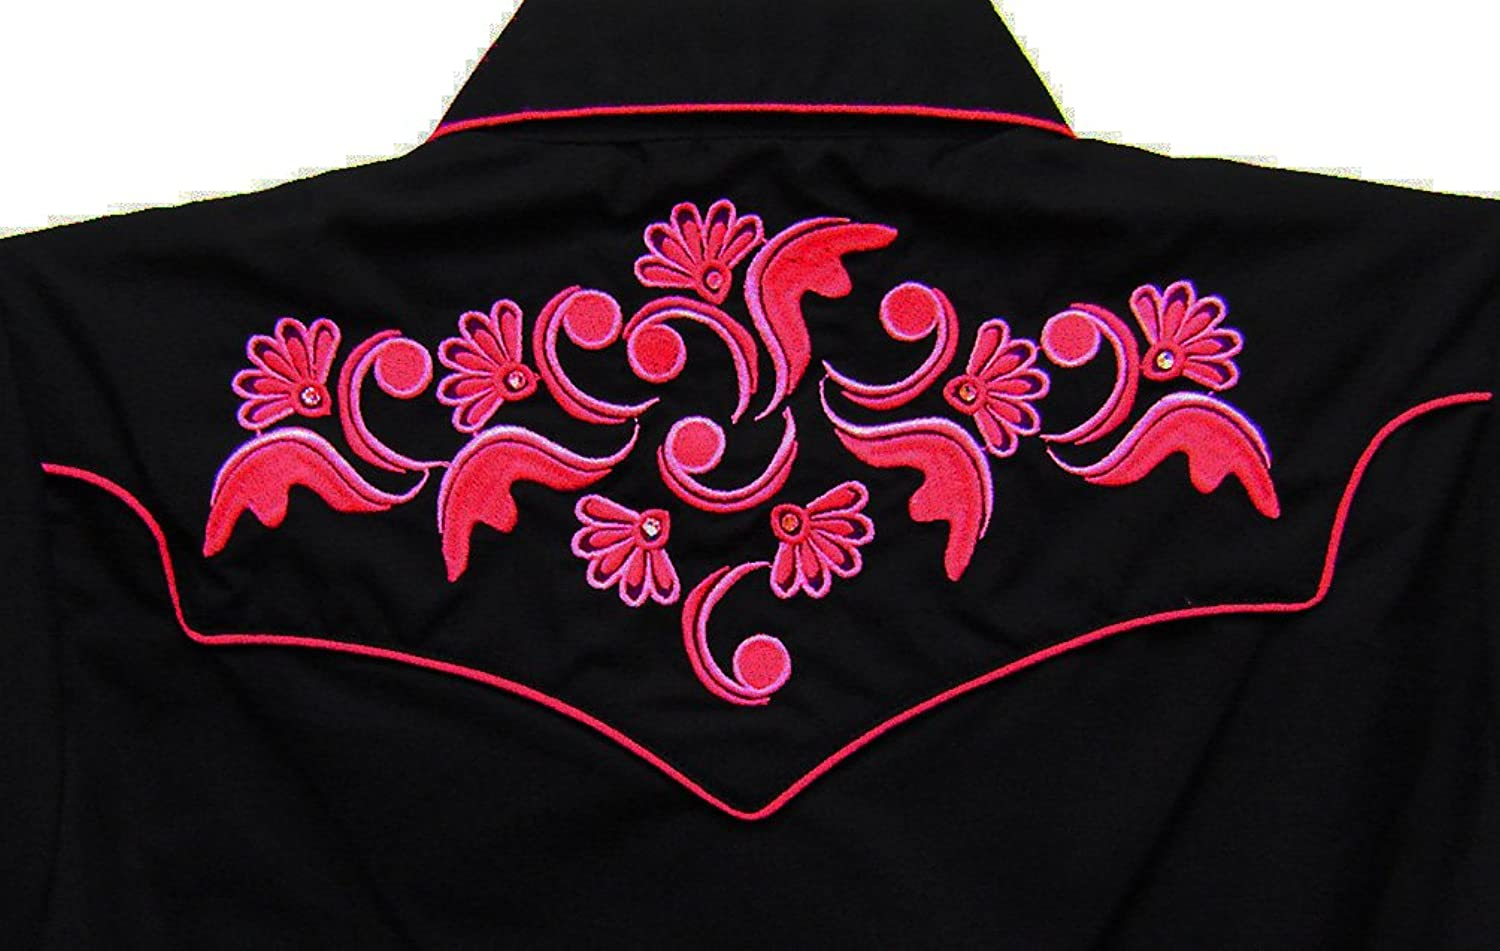 Modestone Women's Women's Embroidered Long Sleeve Shirt Floral Black